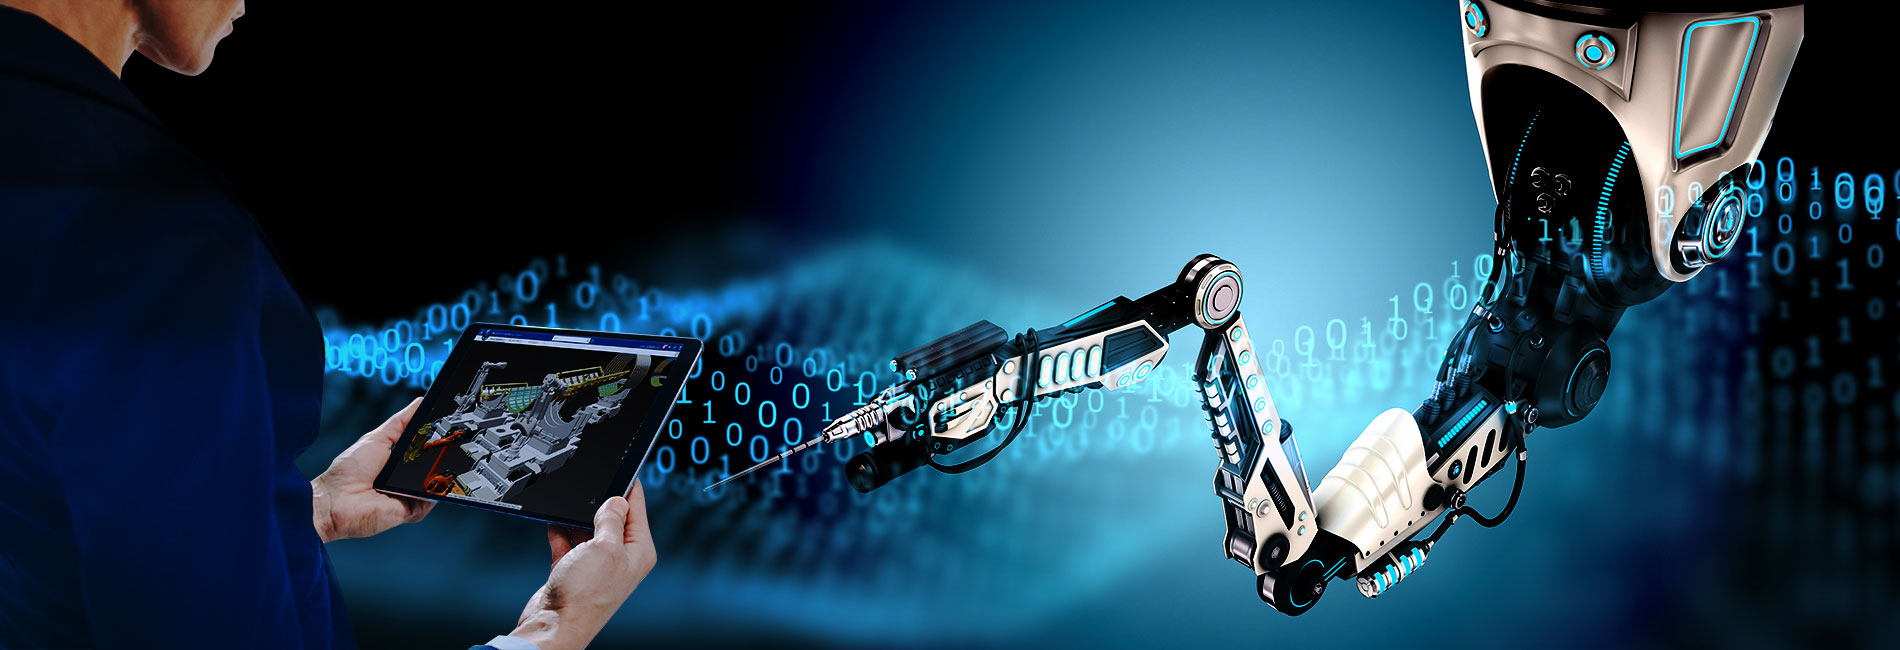 The Future of Robotics in Manufacturing: Automation and Intelligence in Supply Chains > Image > Dassault Systèmes®